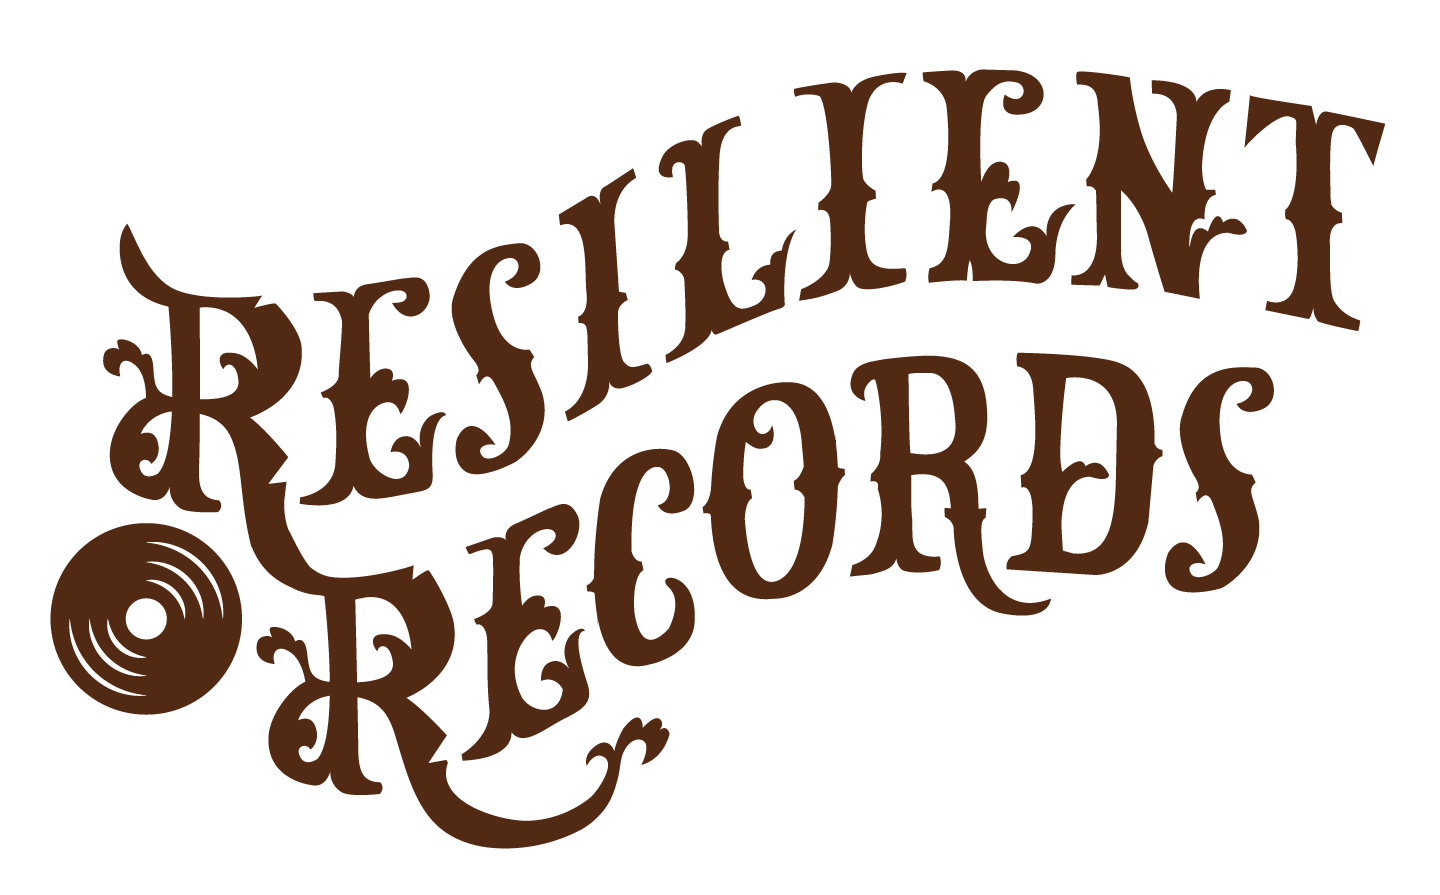 ResilientRecordsLogo-brown.png